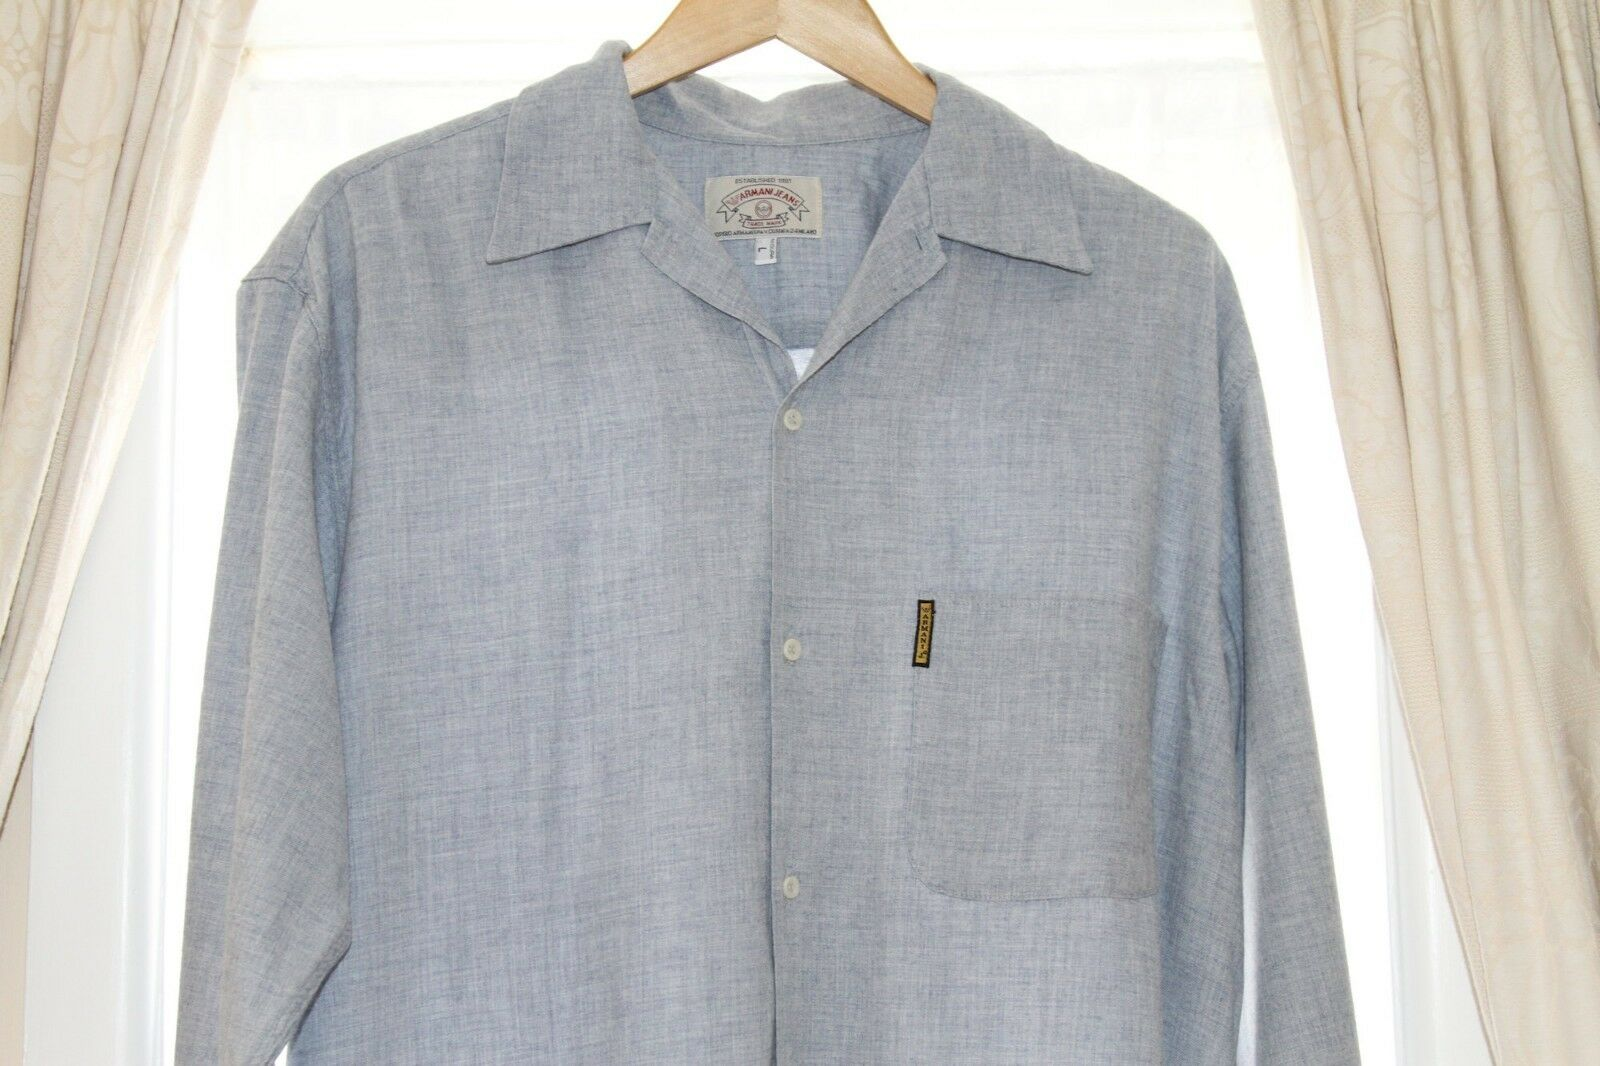 Armani Jeans Vintage Men's Long Sleeve Shirt - Cotton & Wool - From late 1990's